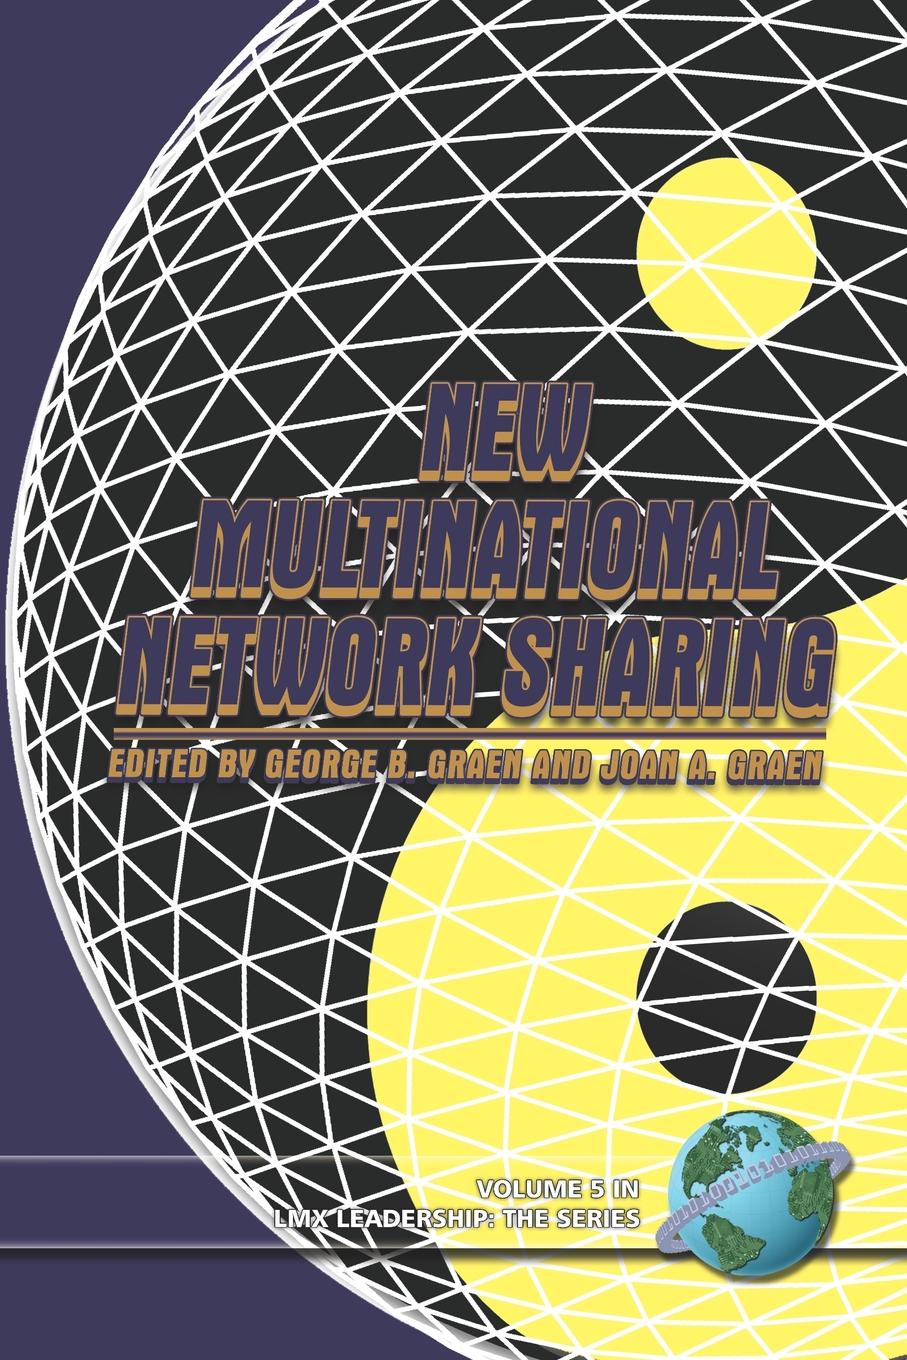 New Multinational Network Sharing This book employs a network-centric approach the field...